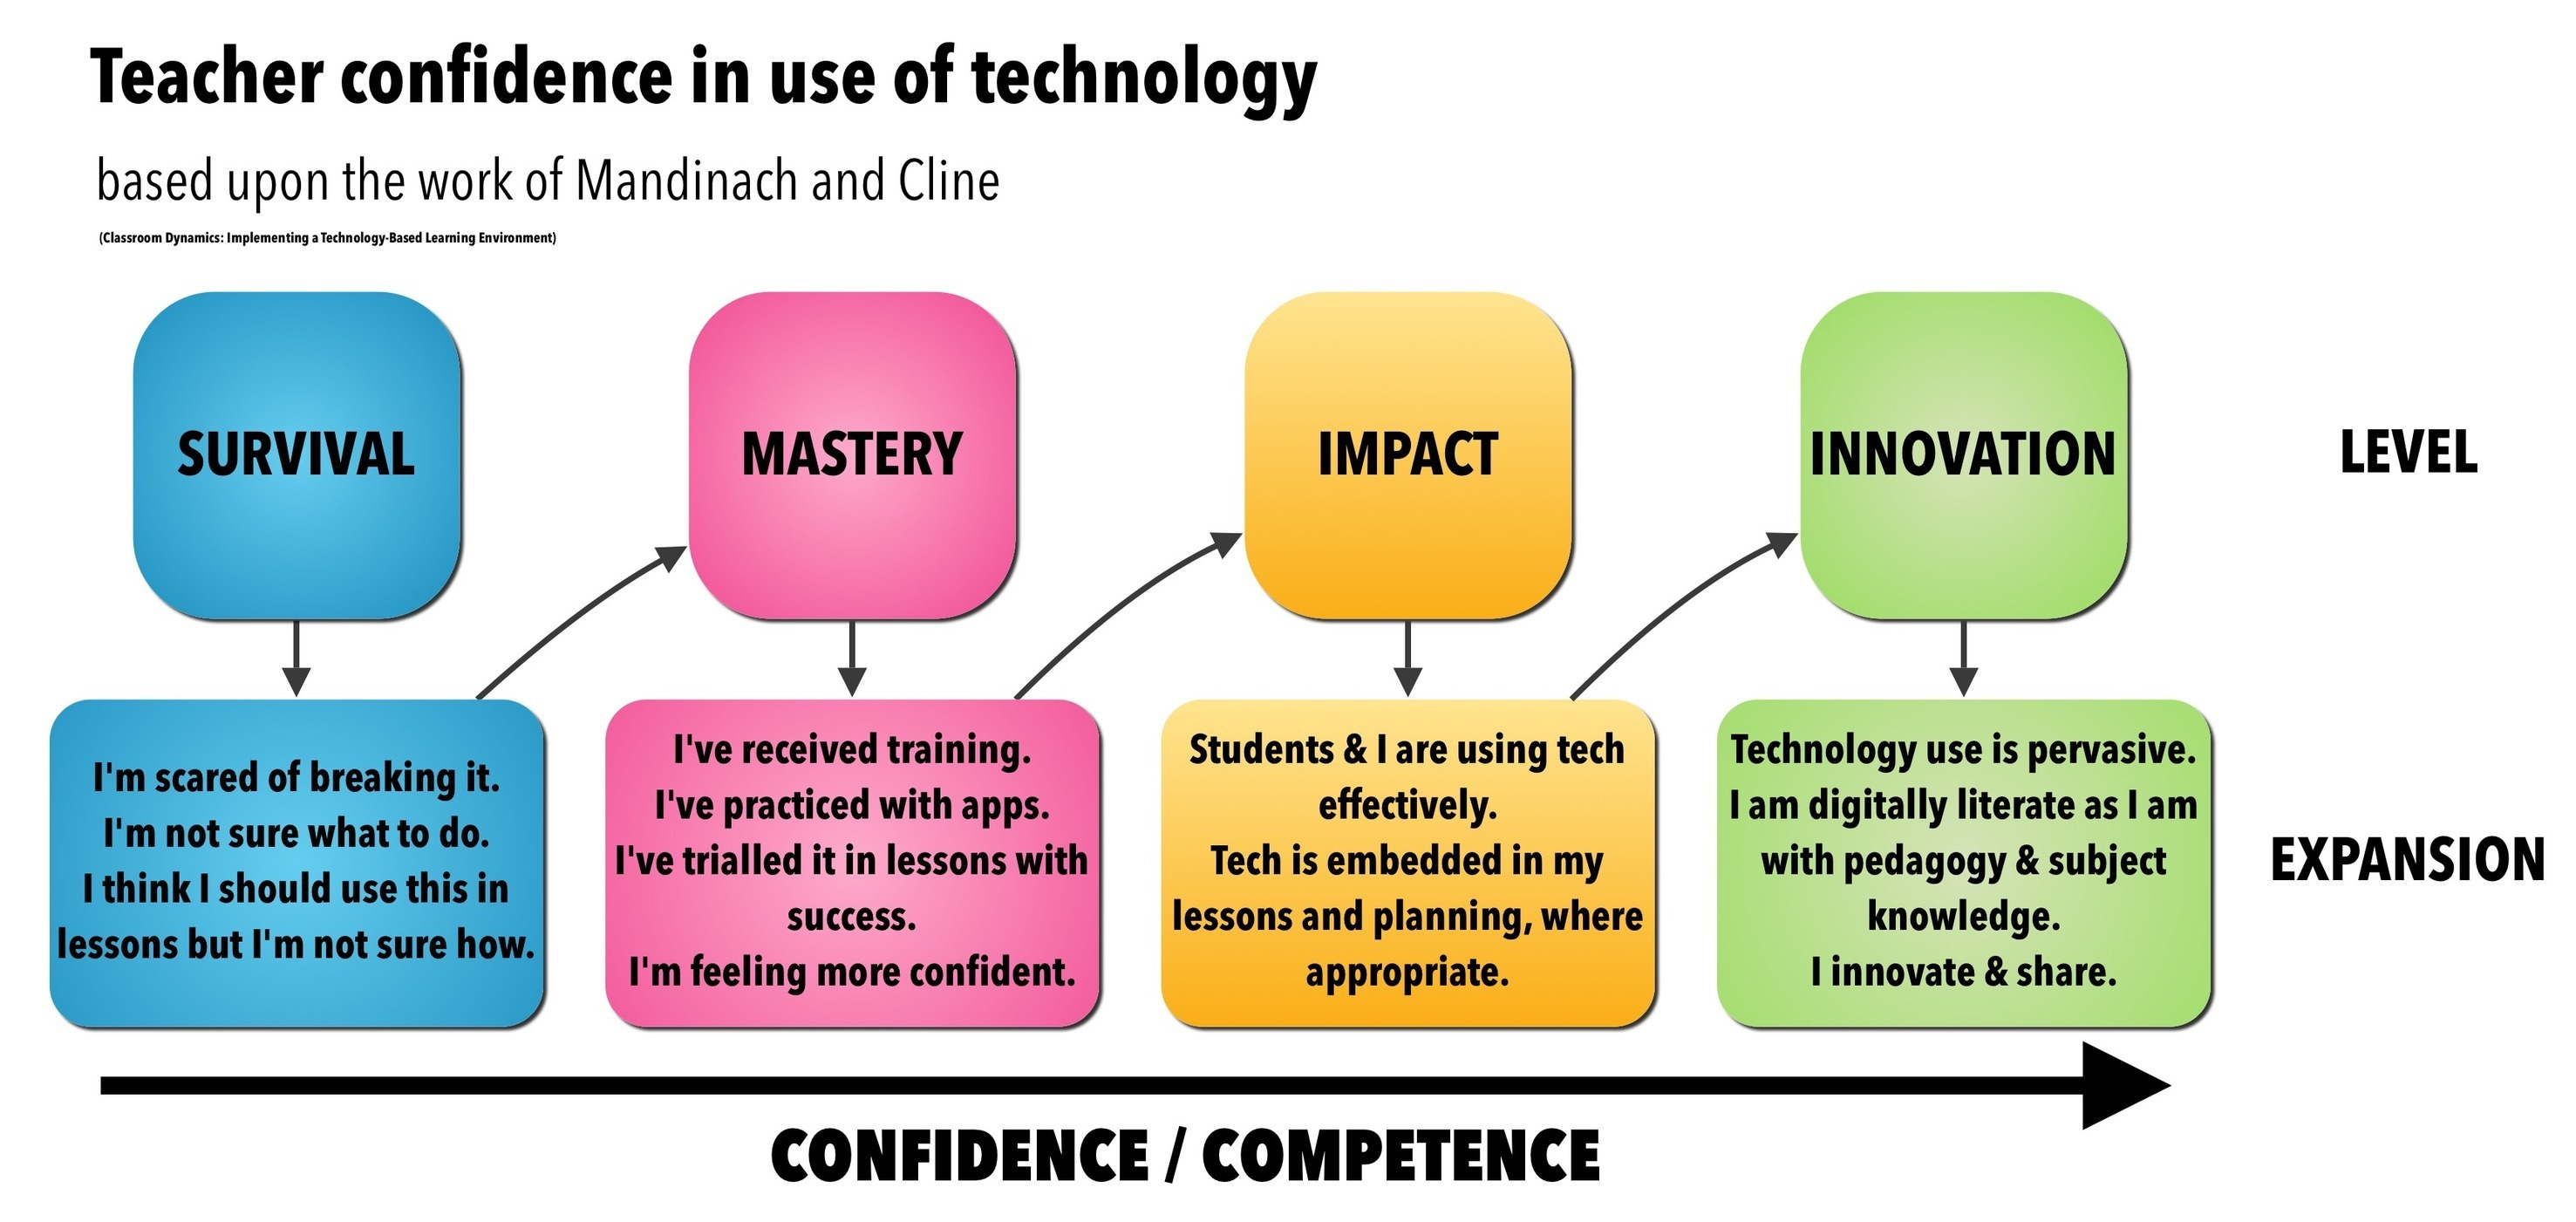 Interesting Flow Chart on Teacher Confidence in Use of Technology ~ Educational Technology and Mobile Learning